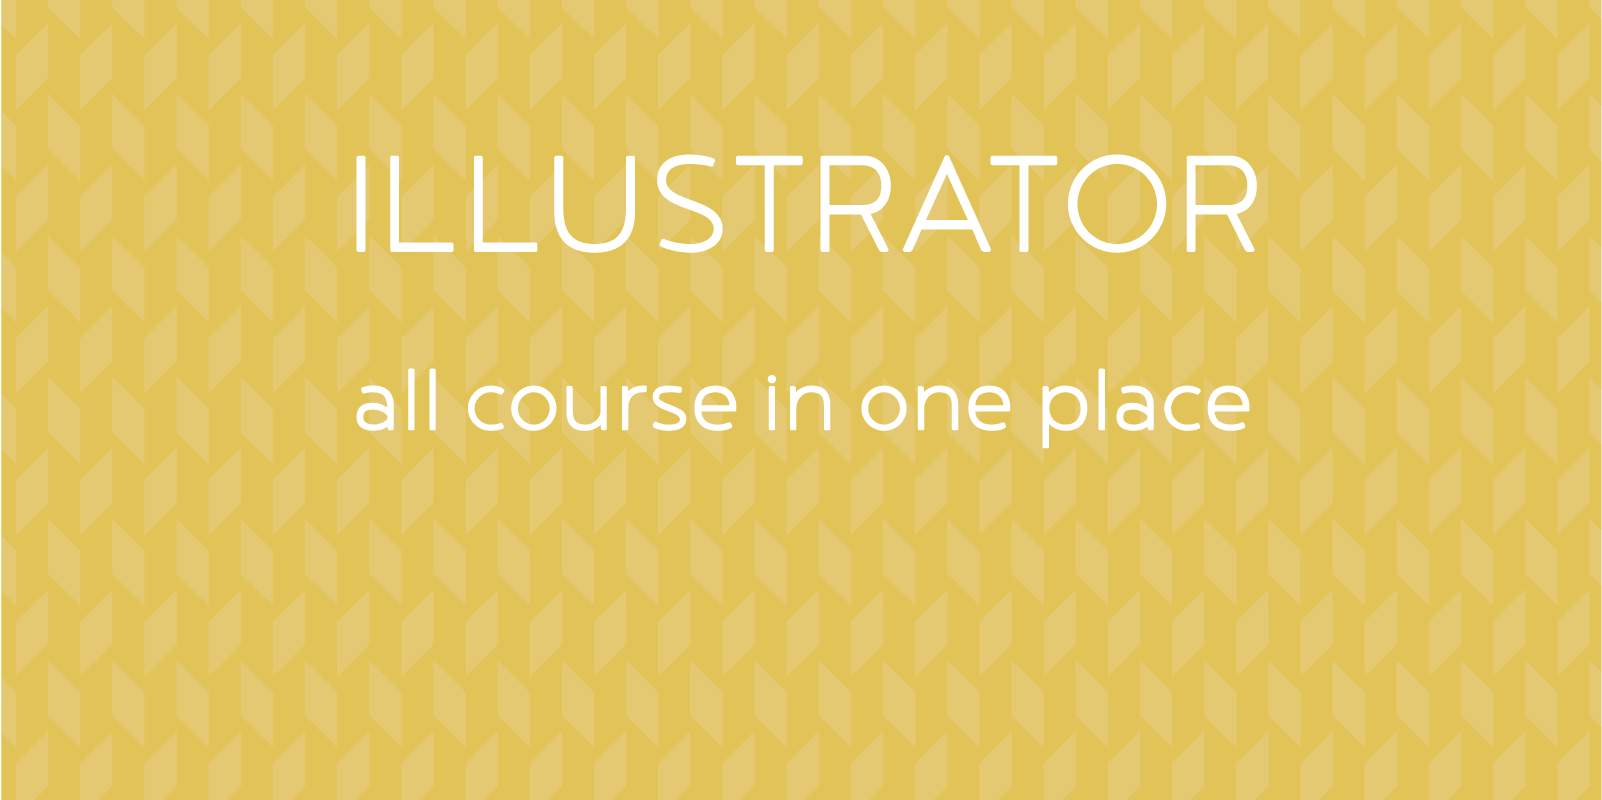 illustrator-digital-design-courses